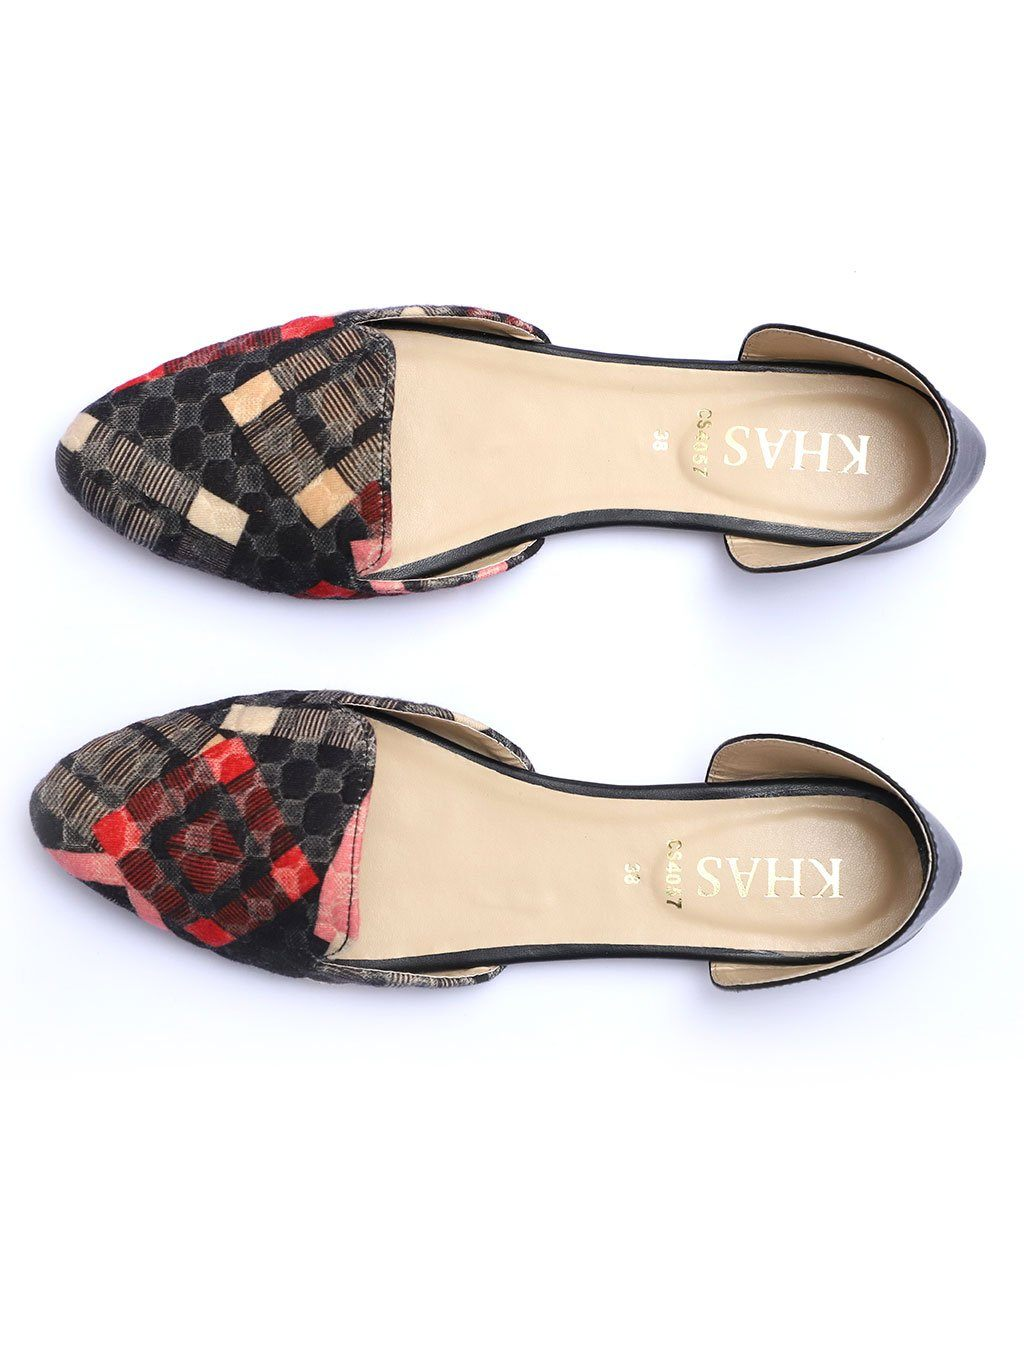 CS-4057 Shoes Winter Edition 1 FASSHOLAD 7